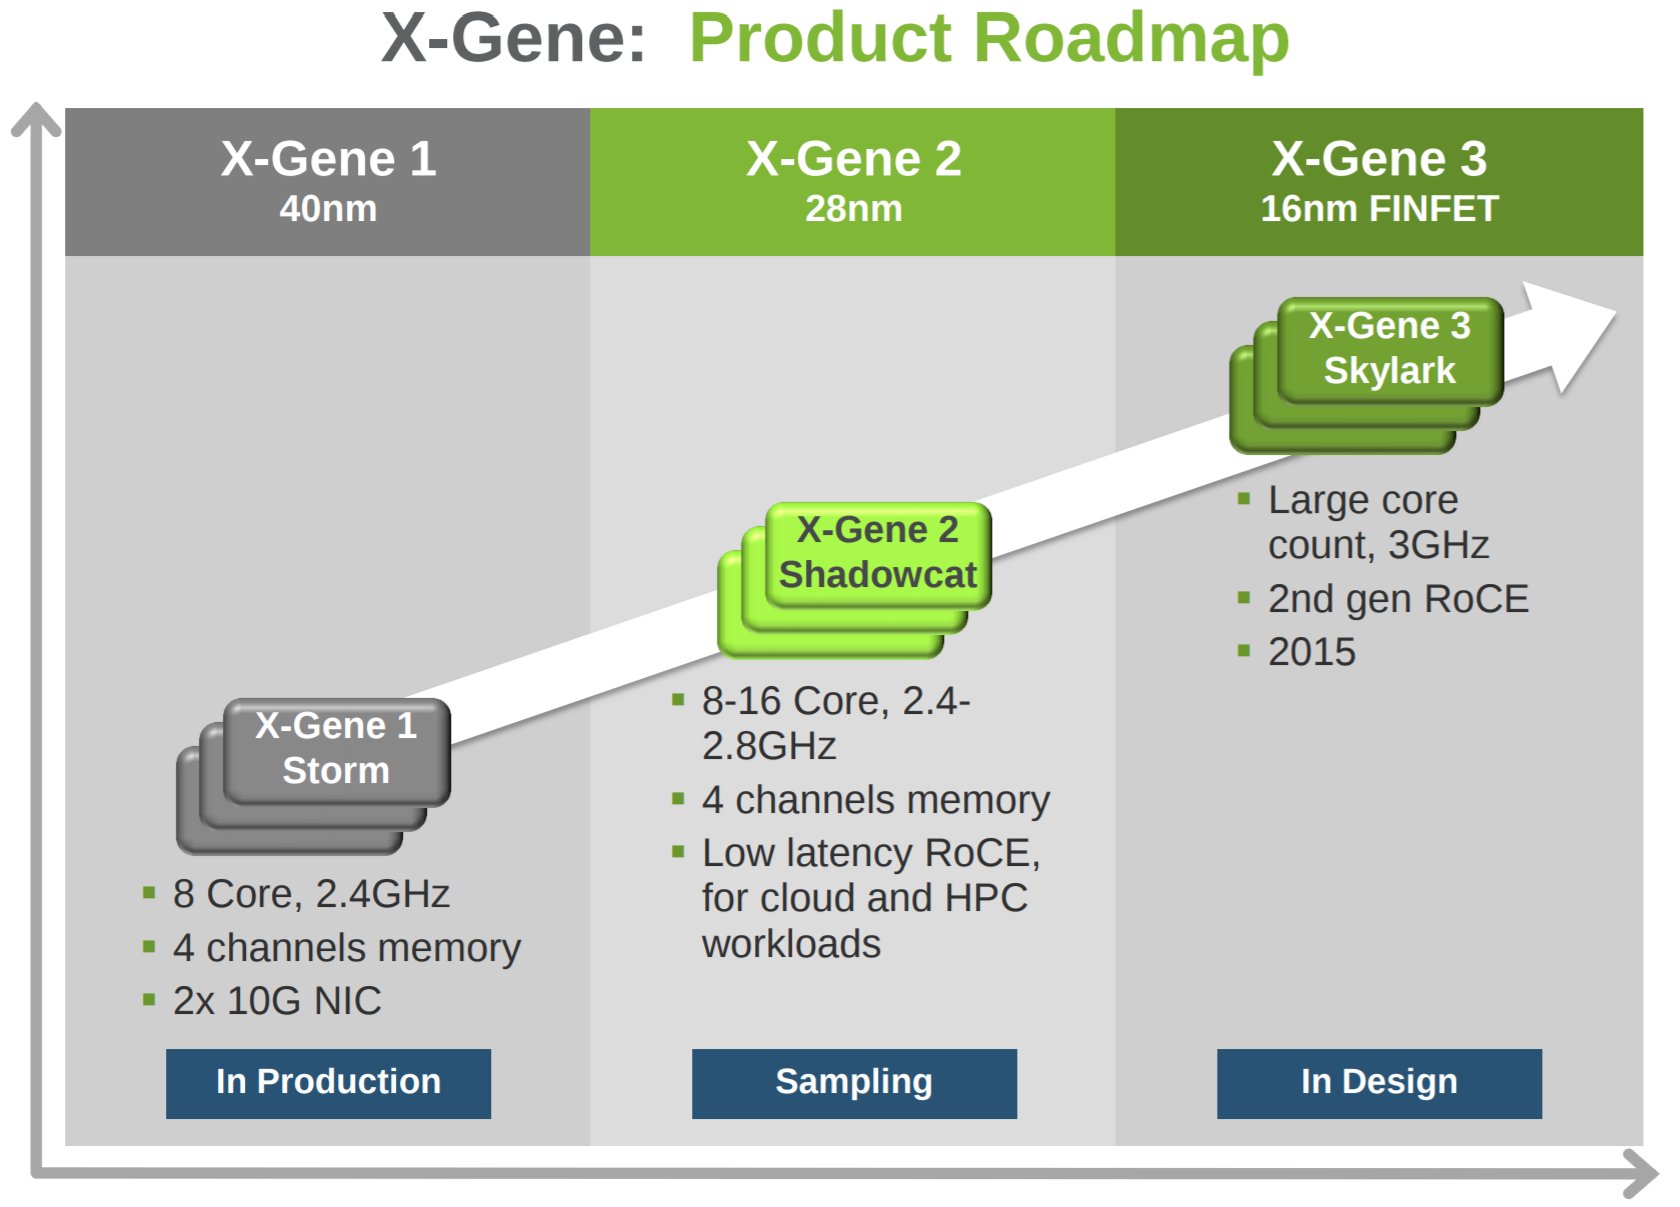 X-Gene 3 gets a second chance at Ampere with a new 32-core 16nm ARM